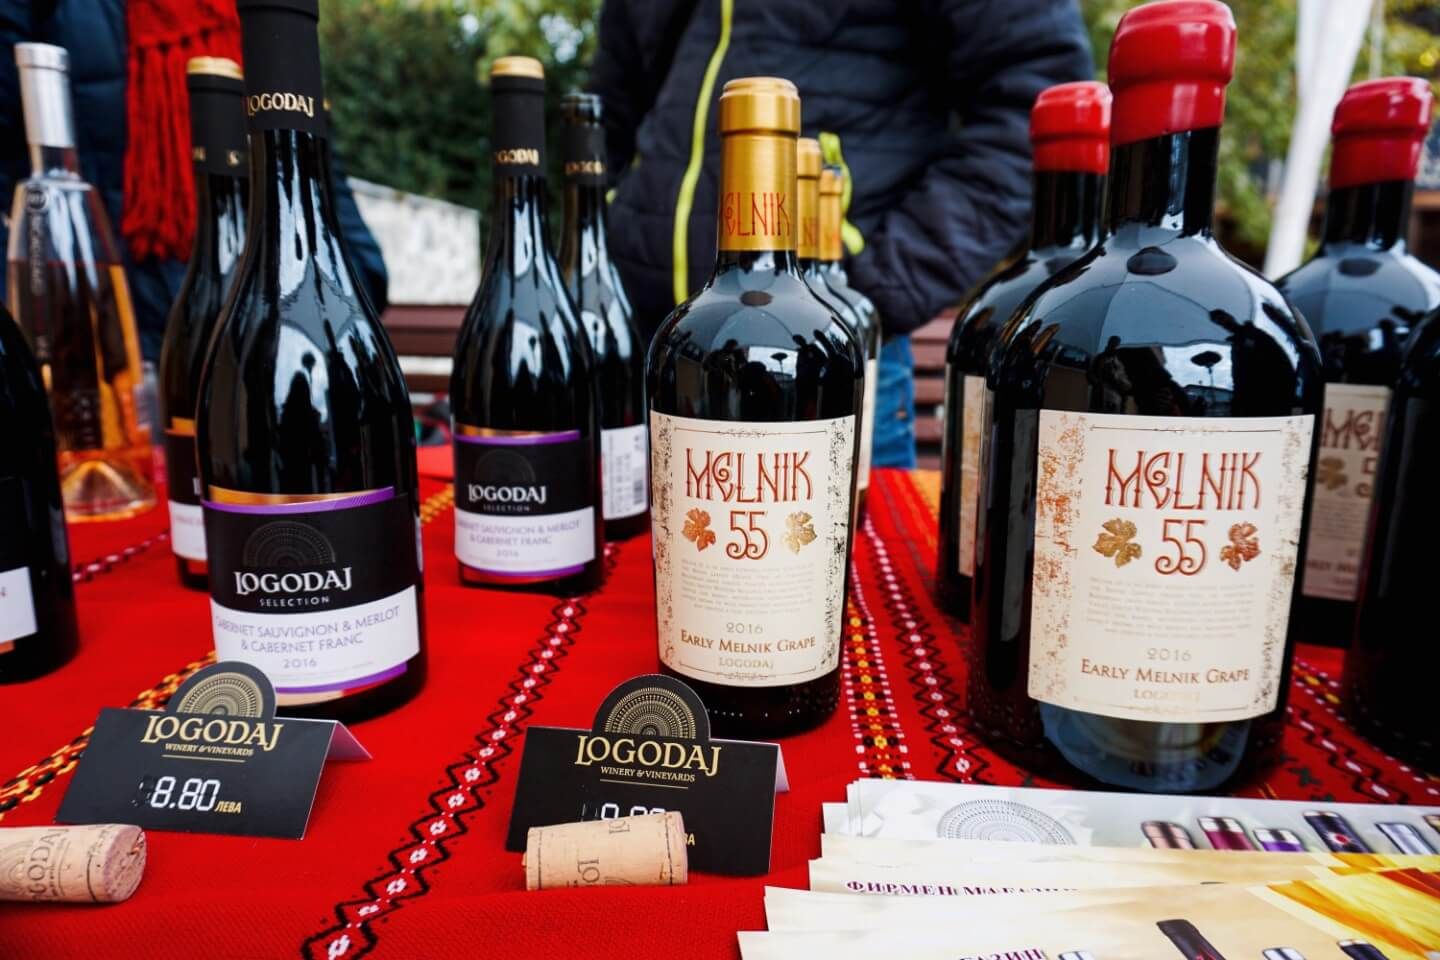 Melnik 55, Young Wine Festival in Plovdiv | 6 things we learned while wine tasting in Bulgaria